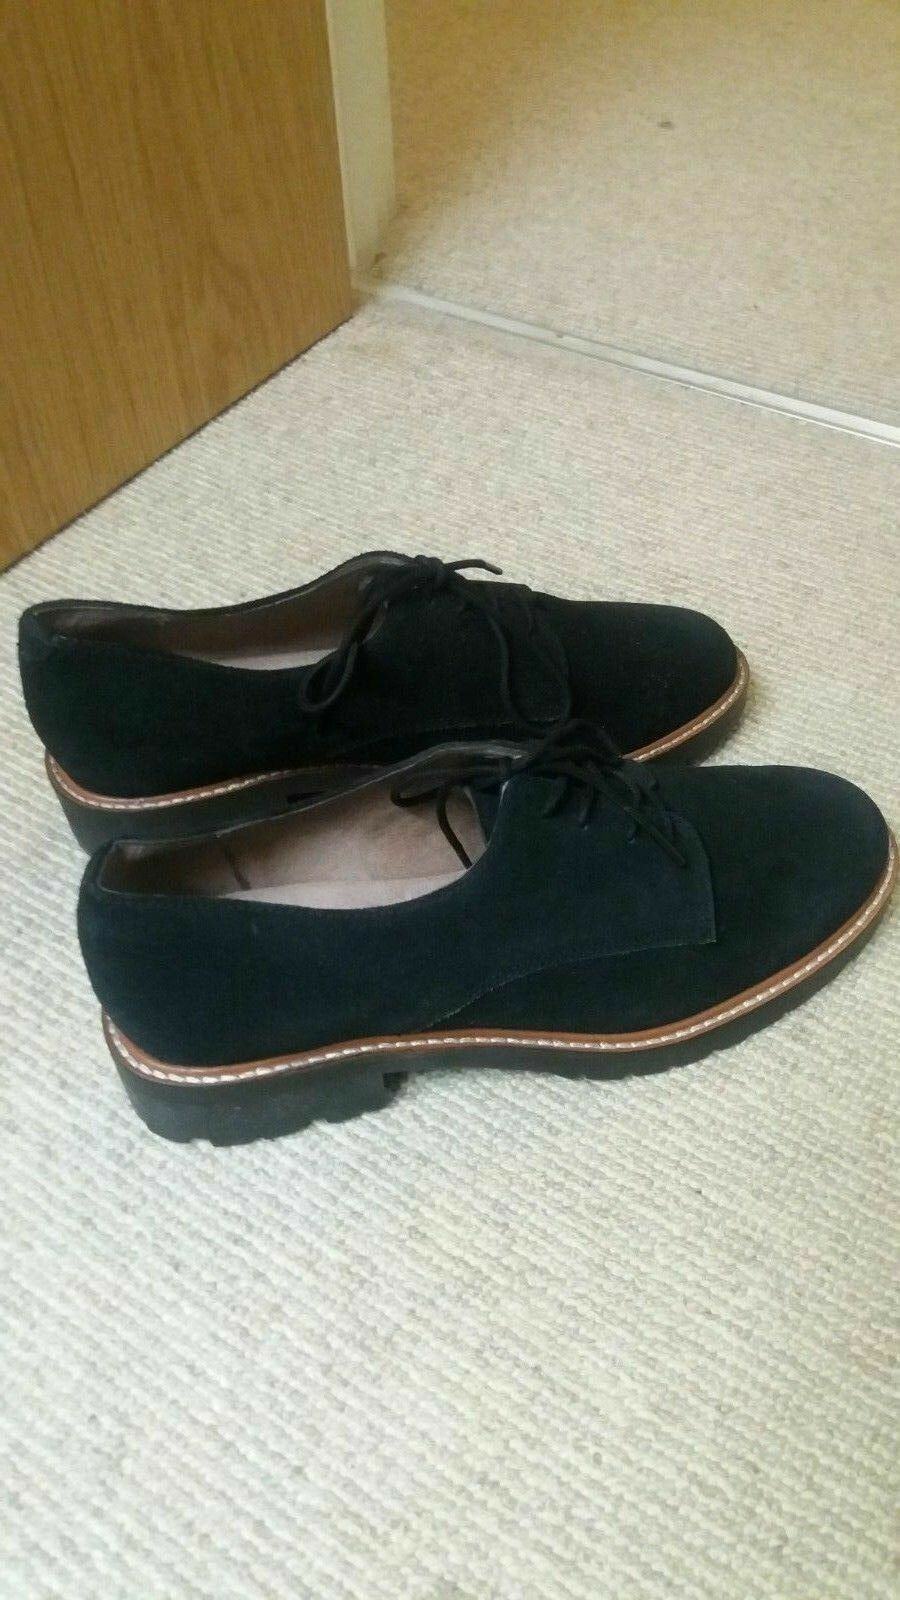 OFFICE BLACK KENNEDY SUEDE CLEATED SOLE LACE UP Schuhe SIZE UK 6 EUR 39